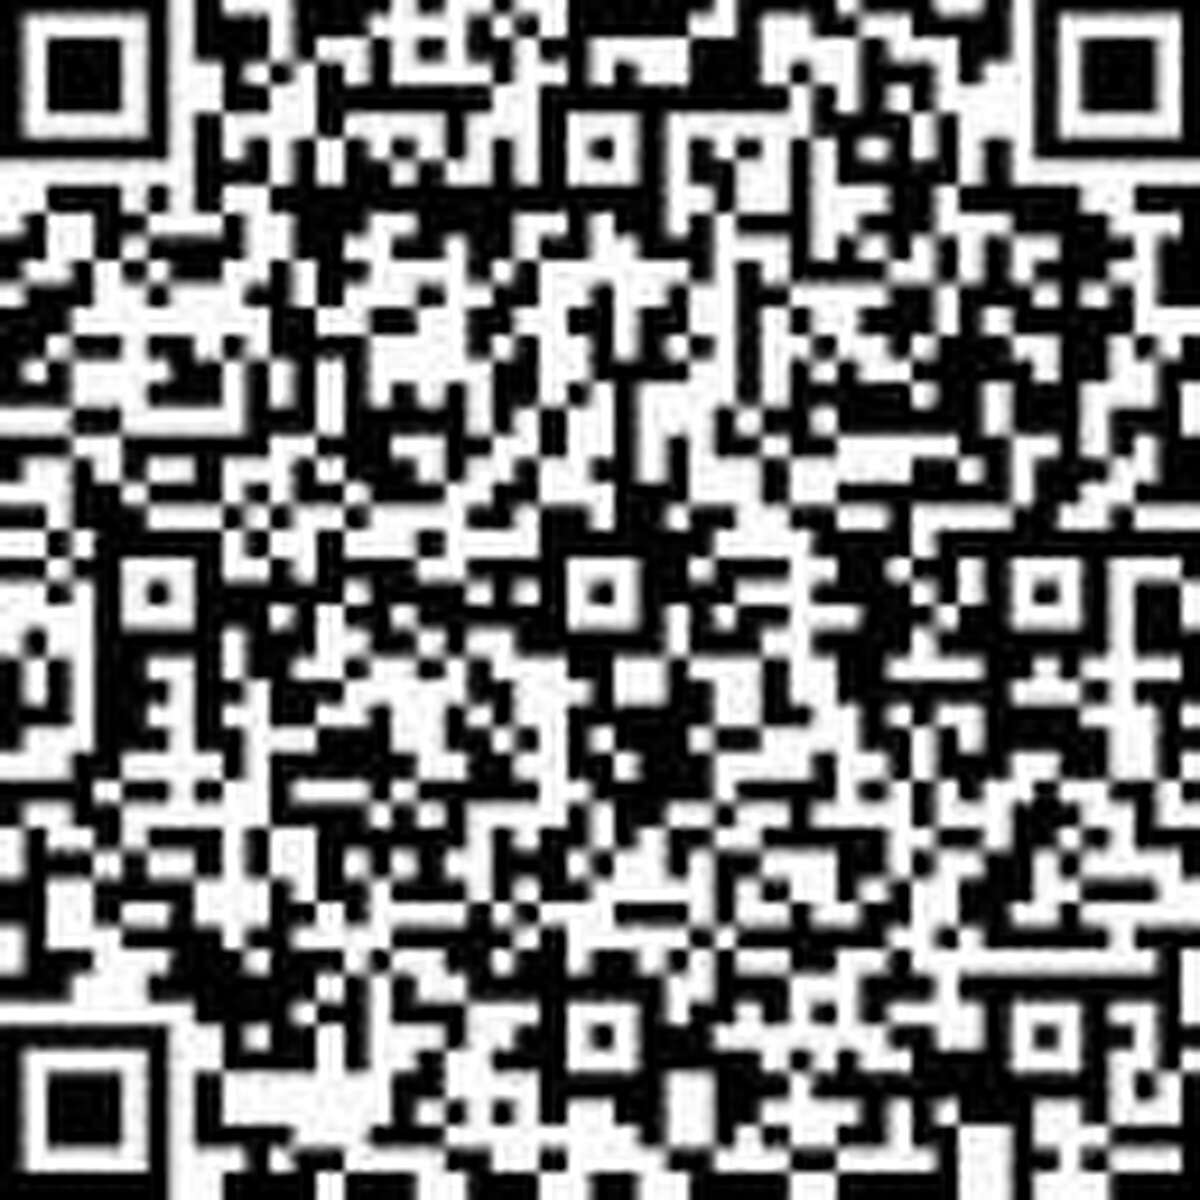 Hold a phone to the QR code to take a brief survey as part of the Permanent Commission on the Status of Women in Connecticut's statewide data collection initiative on